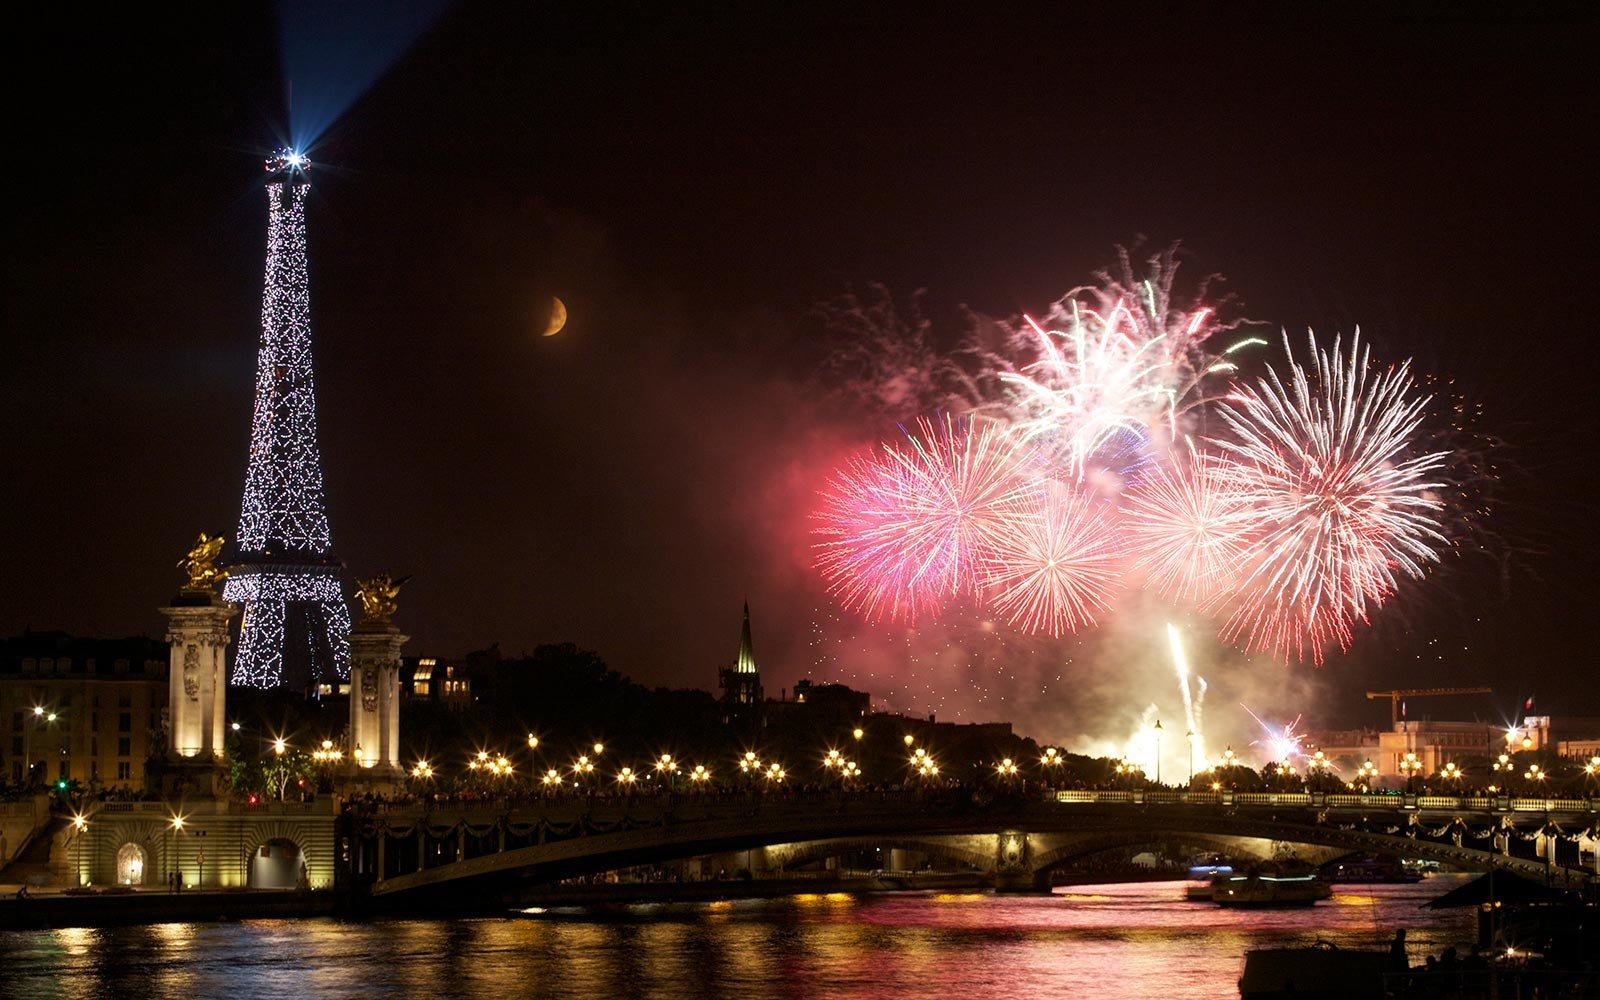 Eiffel Tower Landmark Paris France Fireworks